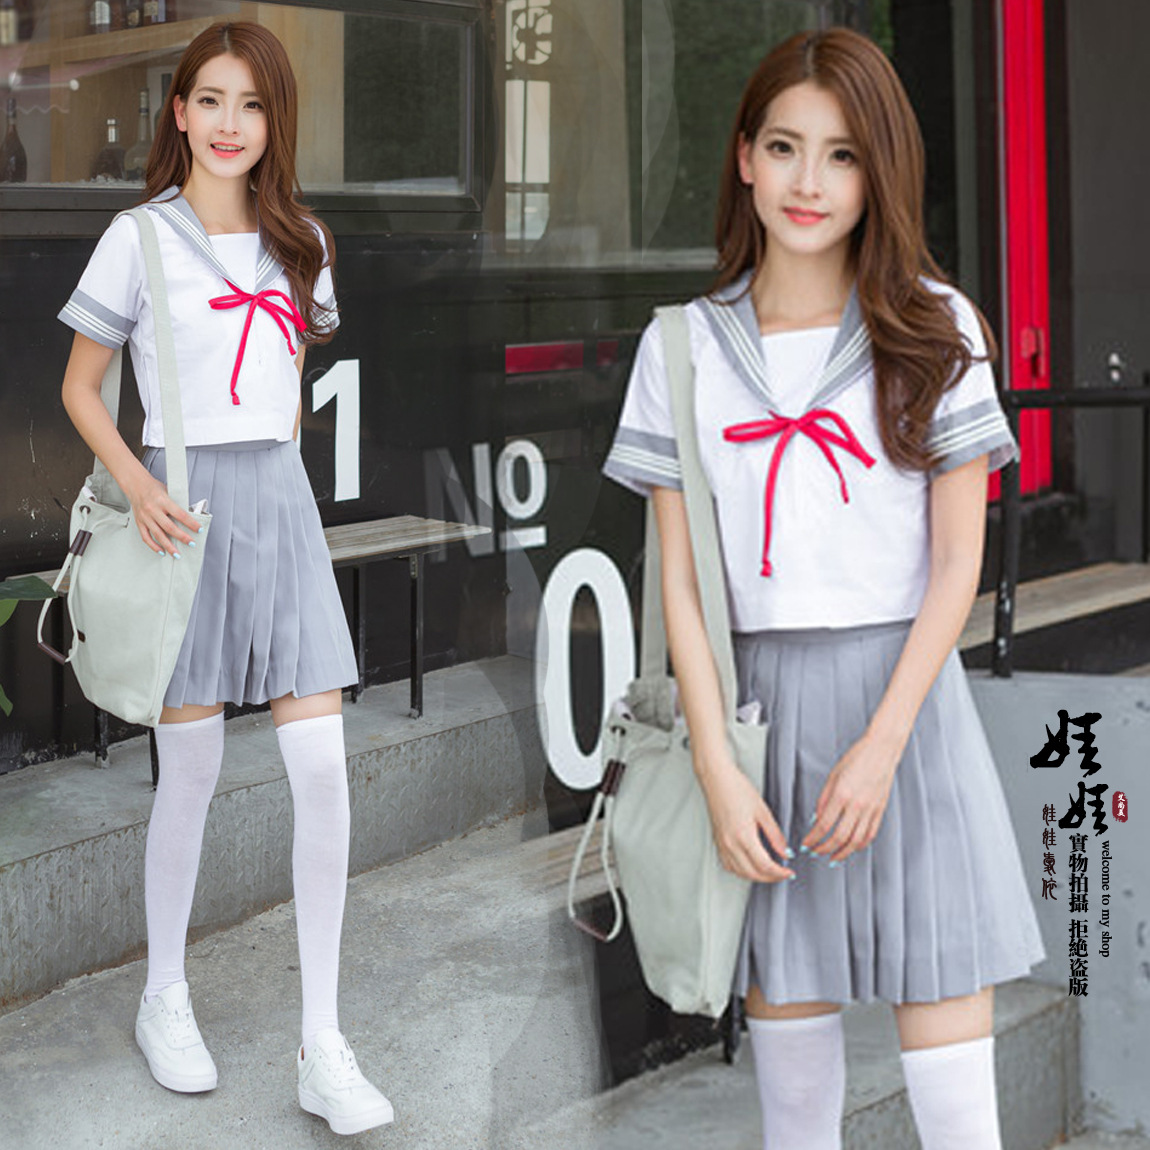 2018 New Arrival Japanese School Girl Uniform Short Sleeved Summer Sailors Suits Middle School Students Cute Uniforms Cosplay